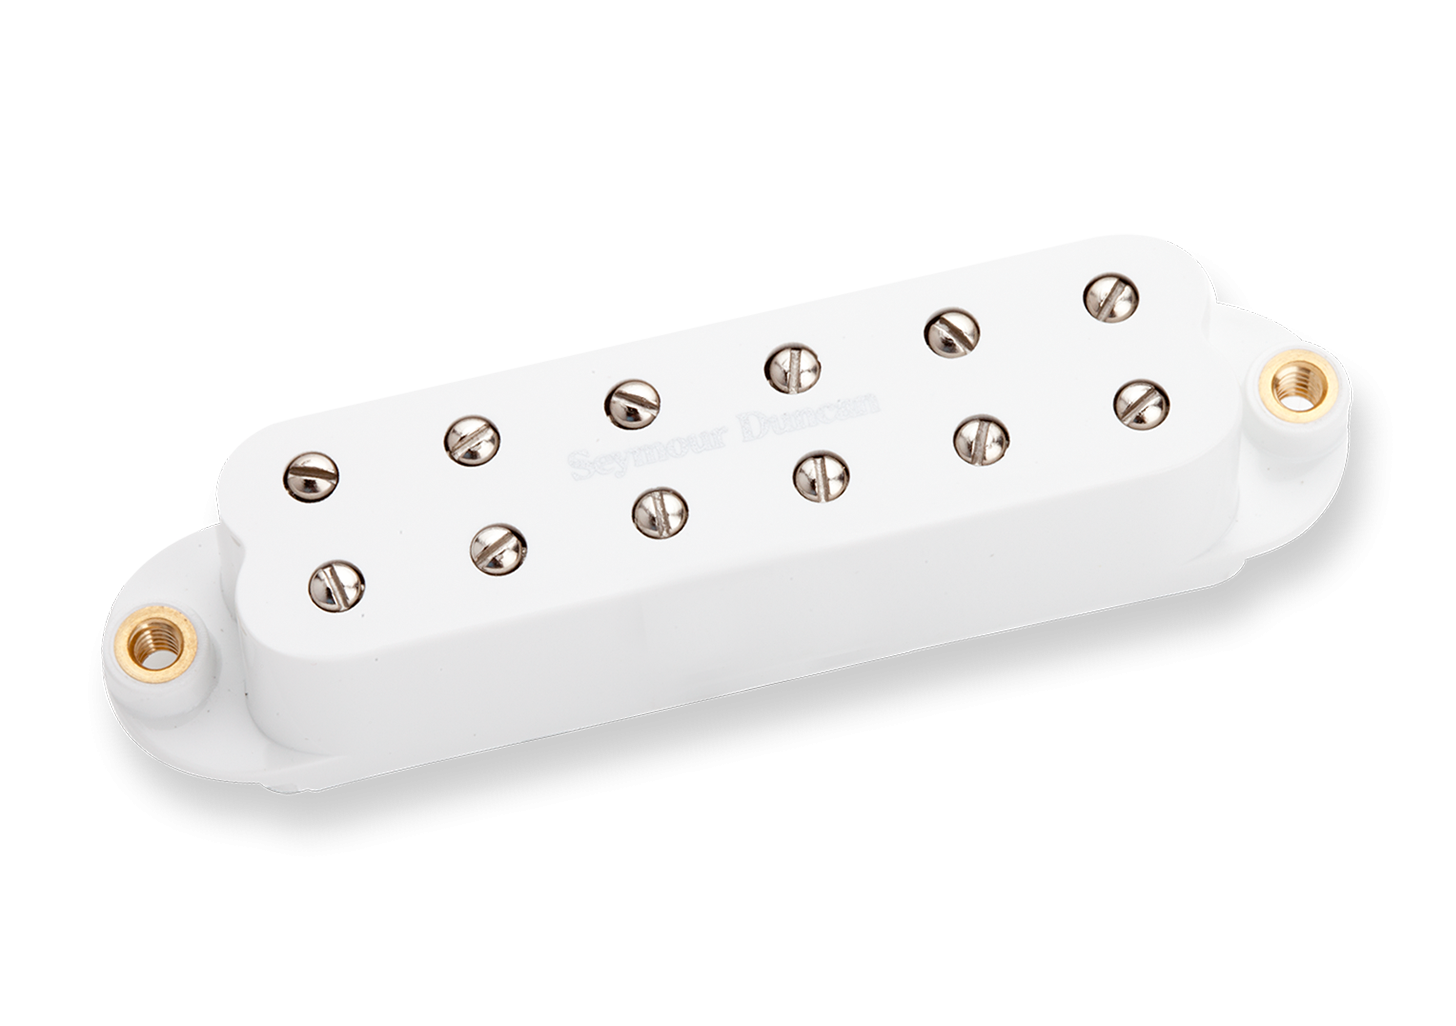 Seymour Duncan Little '59 Strat SL59-1B Bridge White